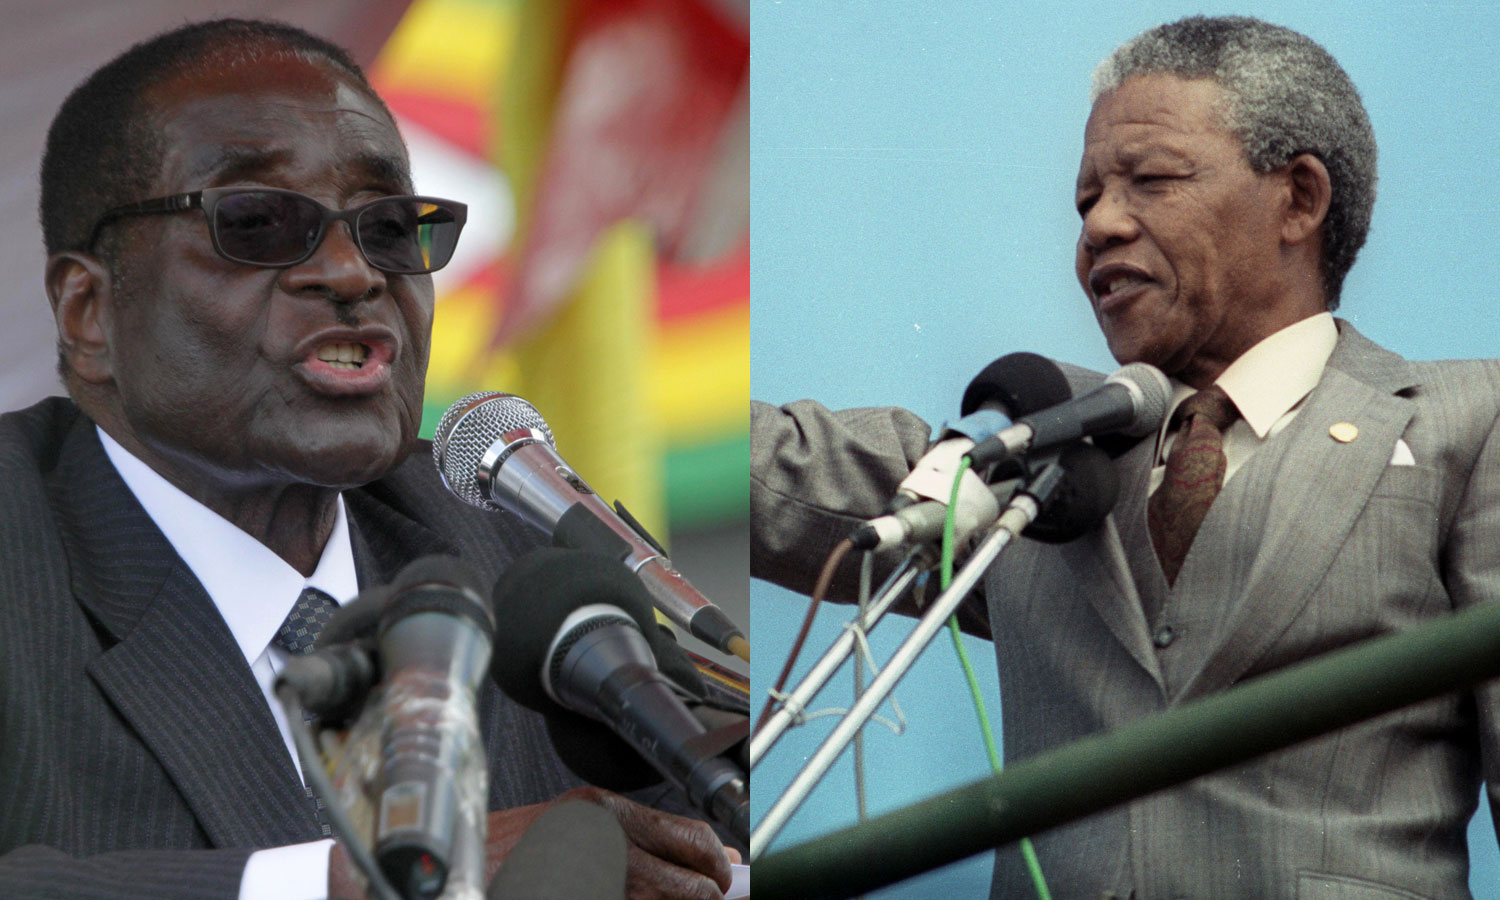 Robert-Mugabe-and-Nelson-Mandela